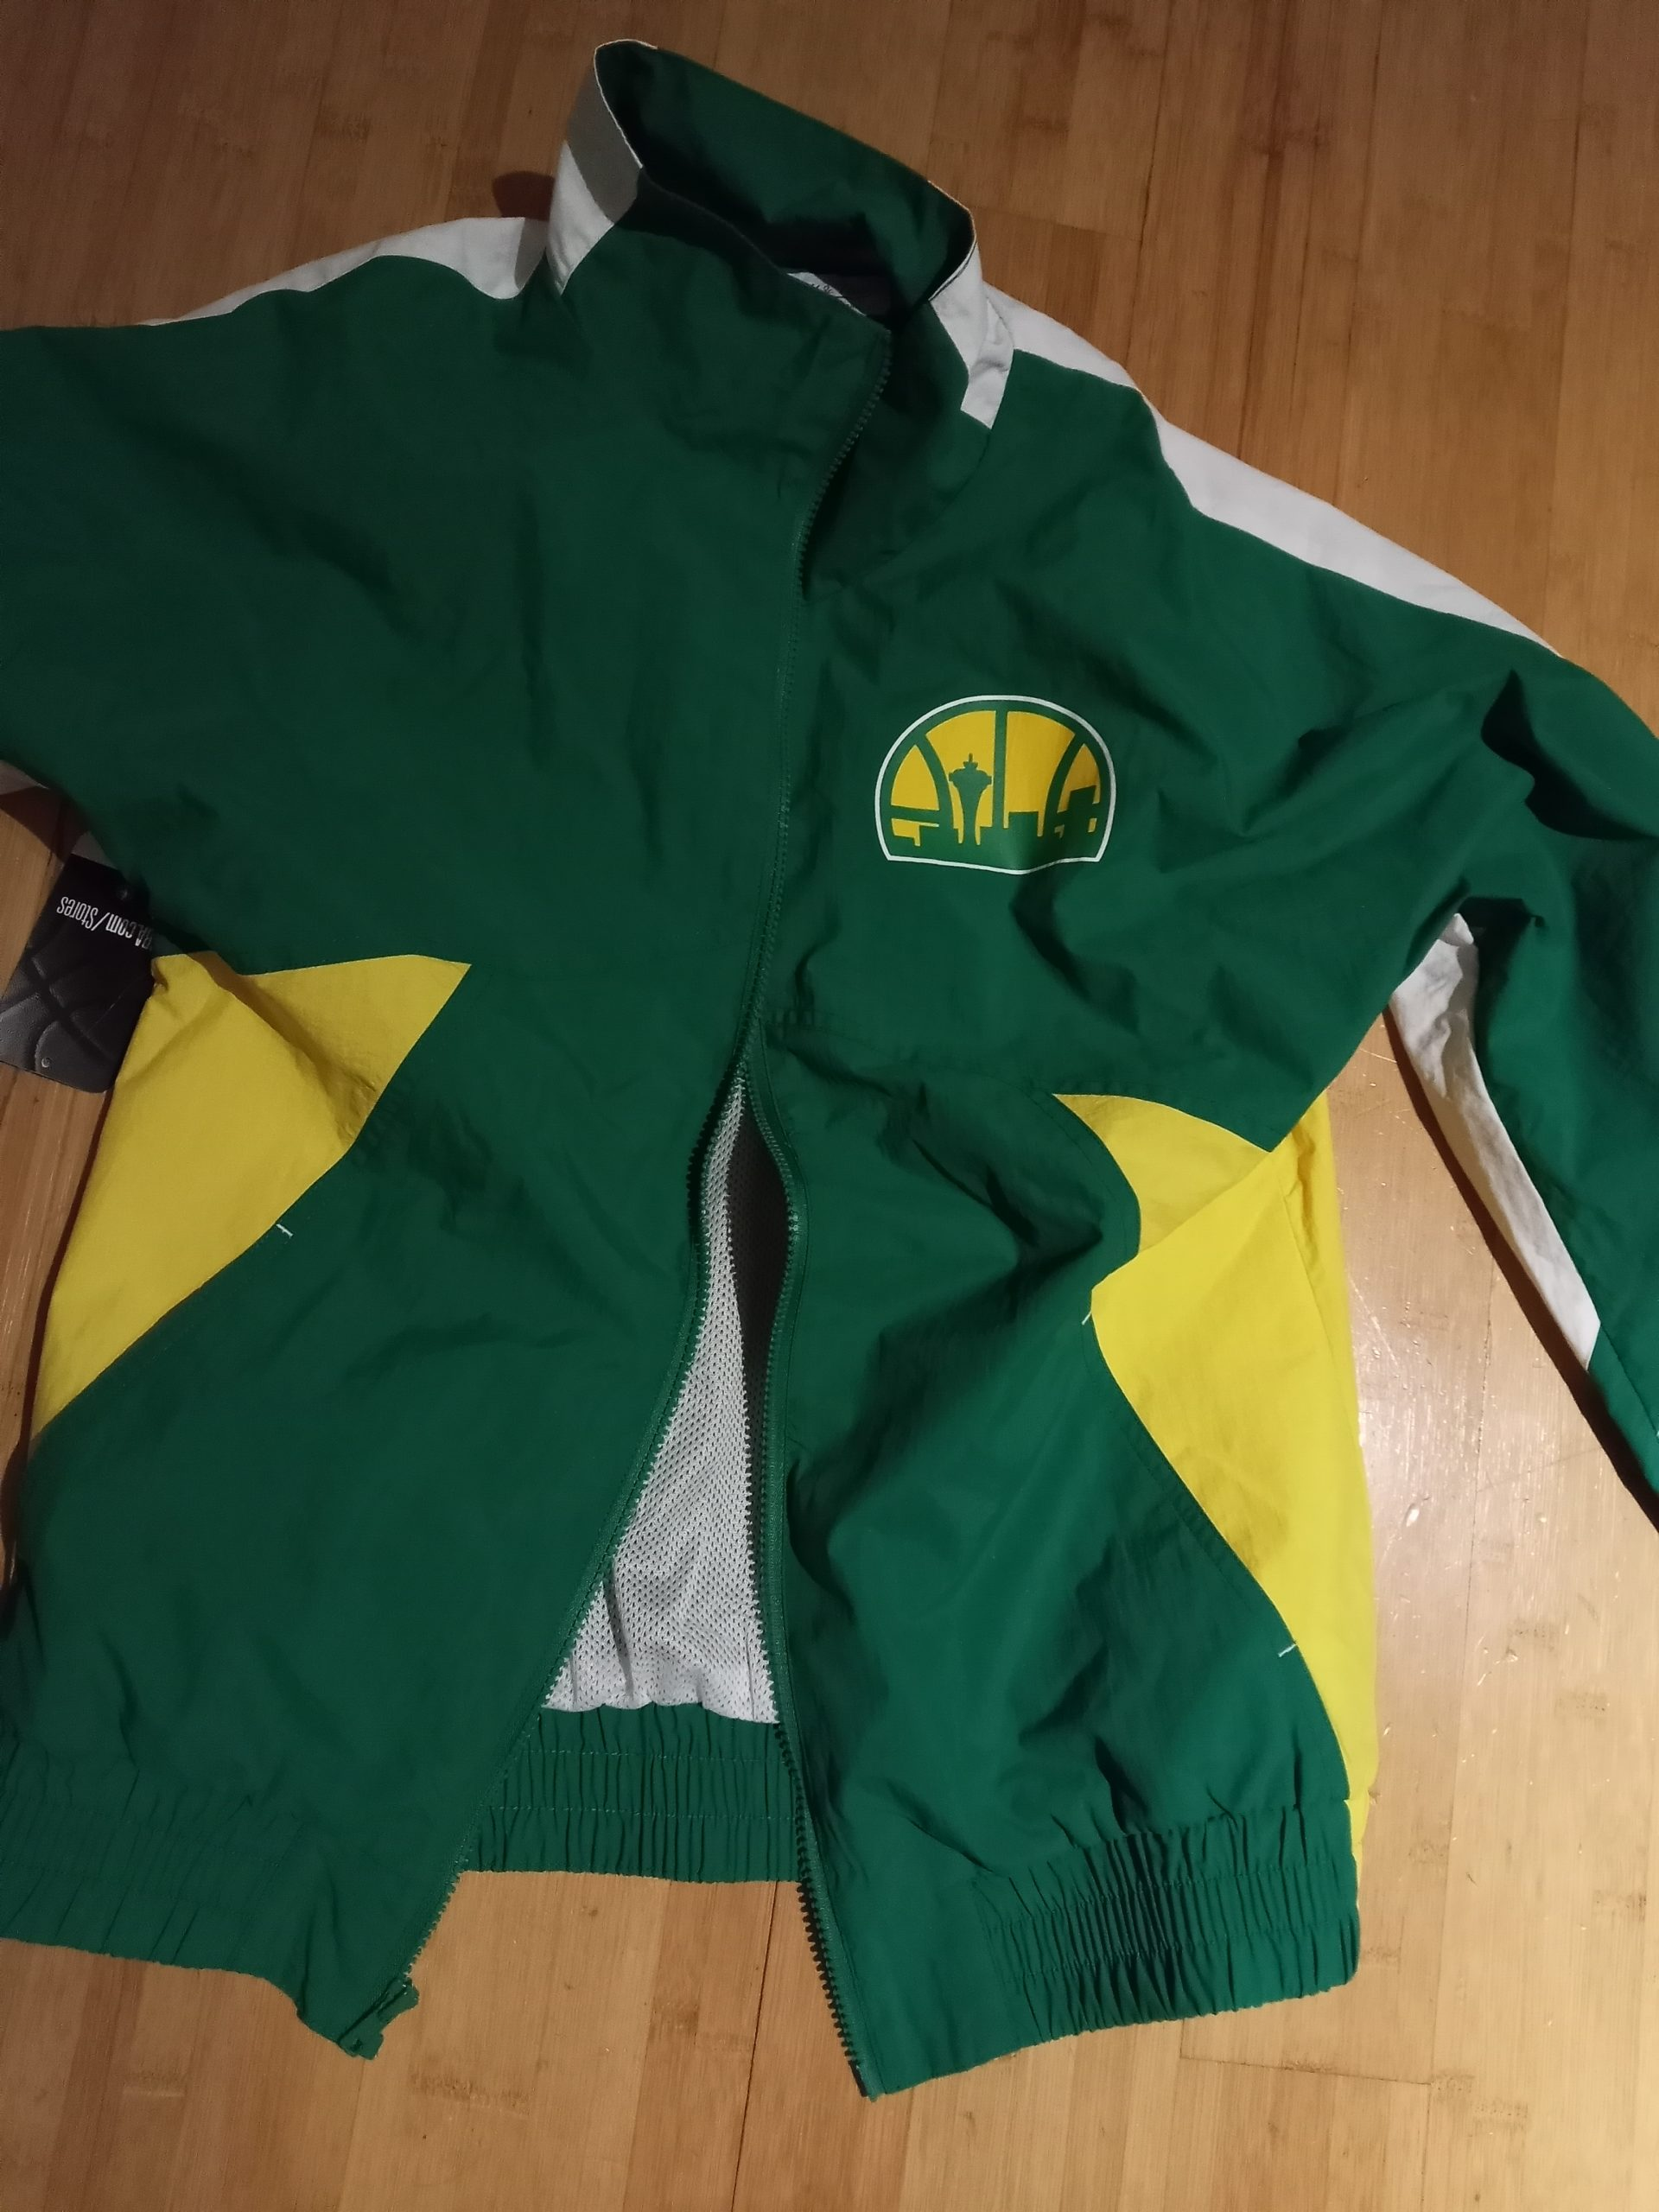 The Sonics jacket, on the day my brother gave it to me